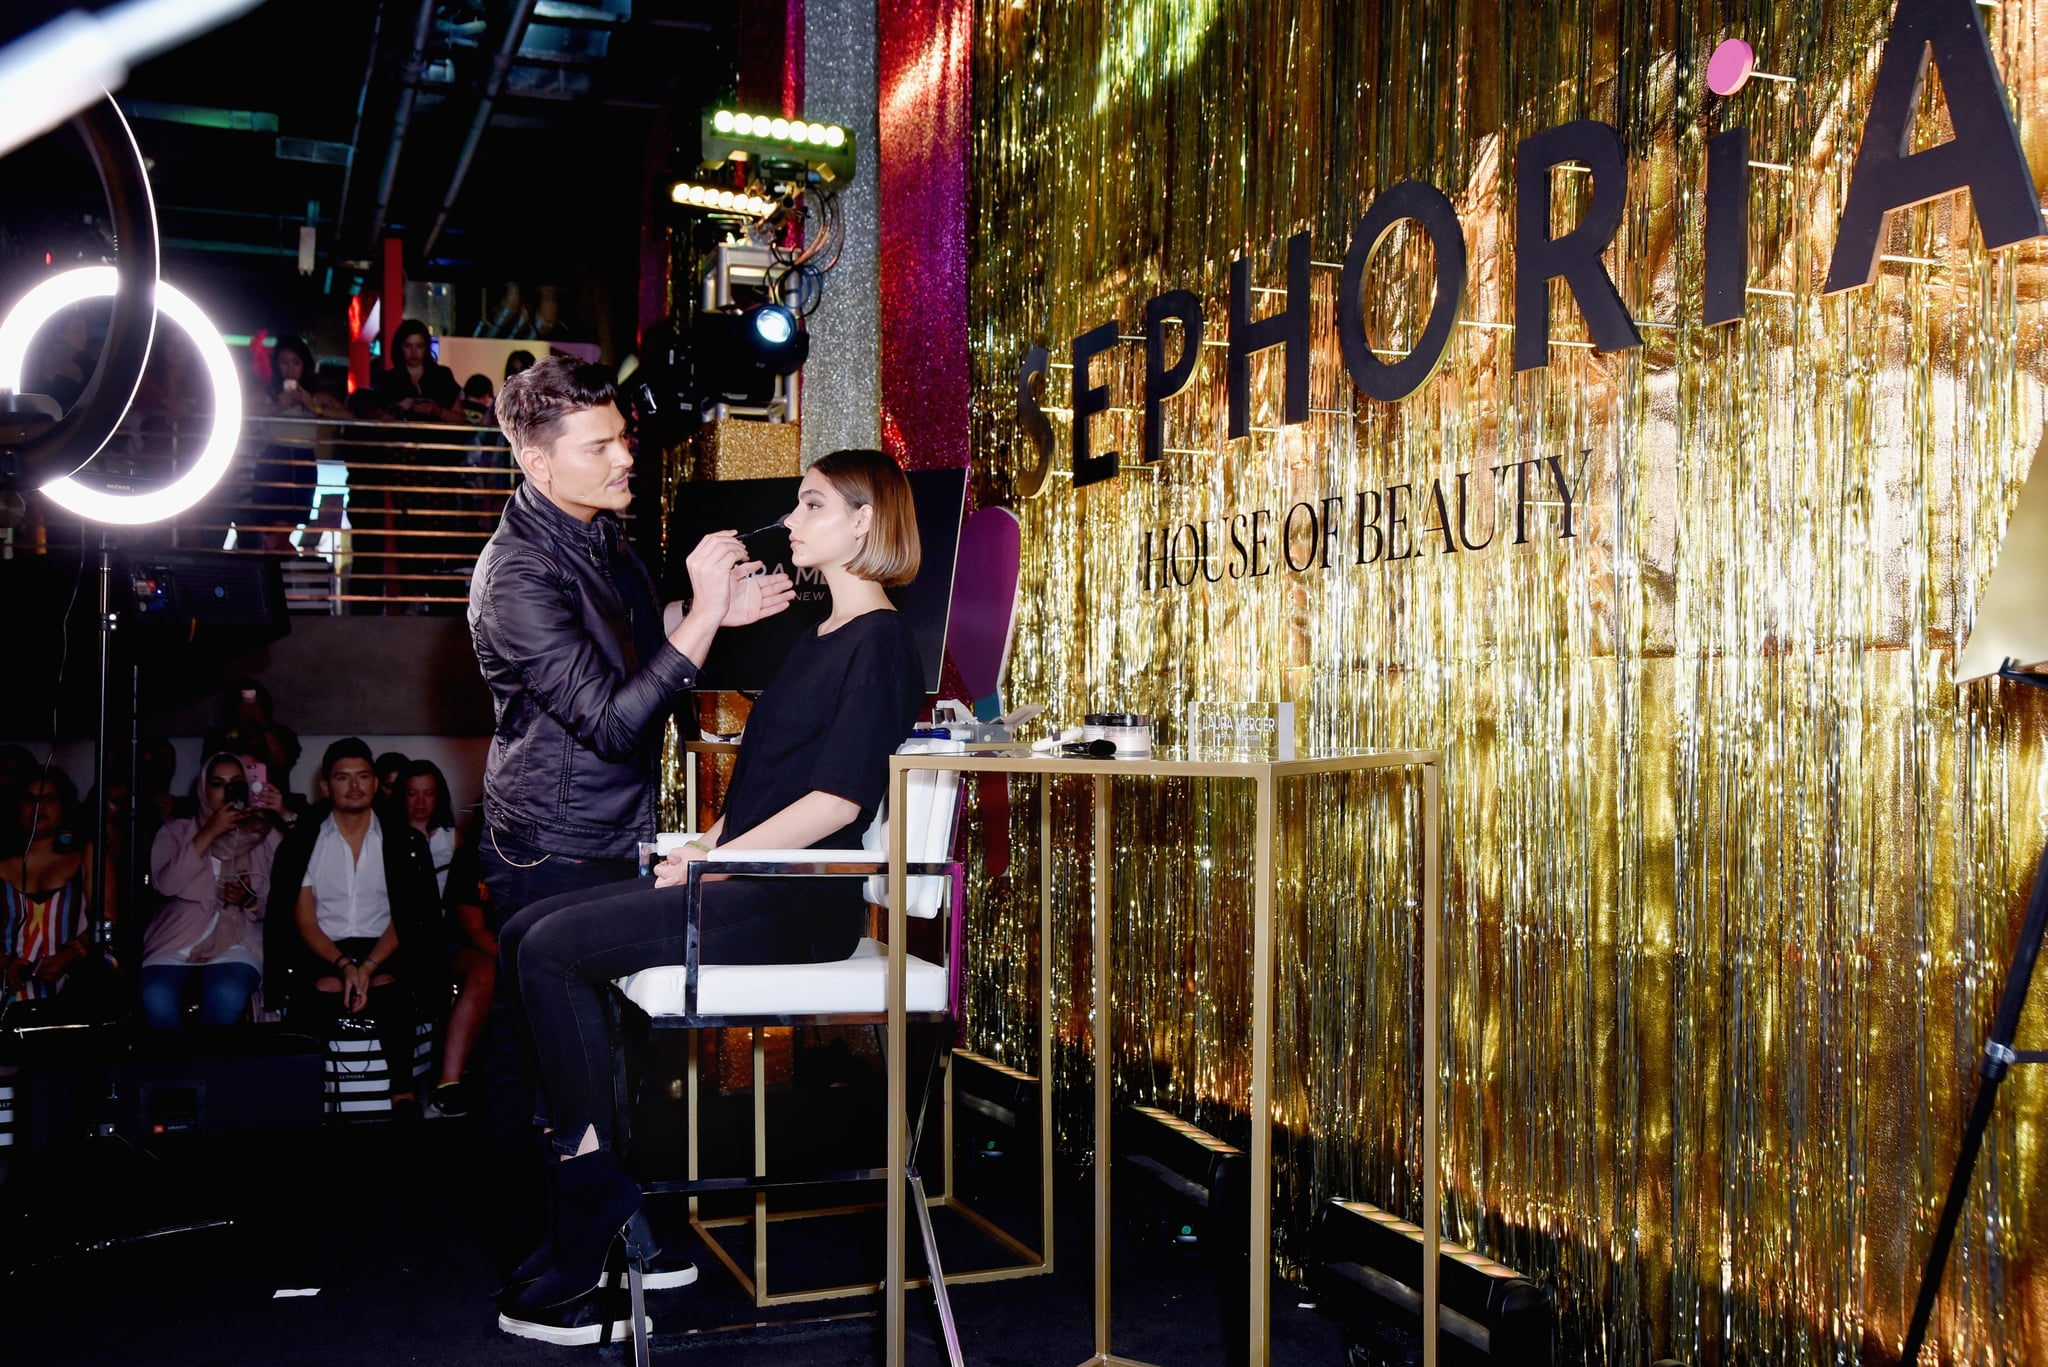 LOS ANGELES, CA - OCTOBER 21:  Mario Dedivanovic (L) speaks onstage during SEPHORiA: House of Beauty - Session Four at The Majestic Downtown on October 21, 2018 in Los Angeles, California.  (Photo by Presley Ann/Getty Images for Sephora)